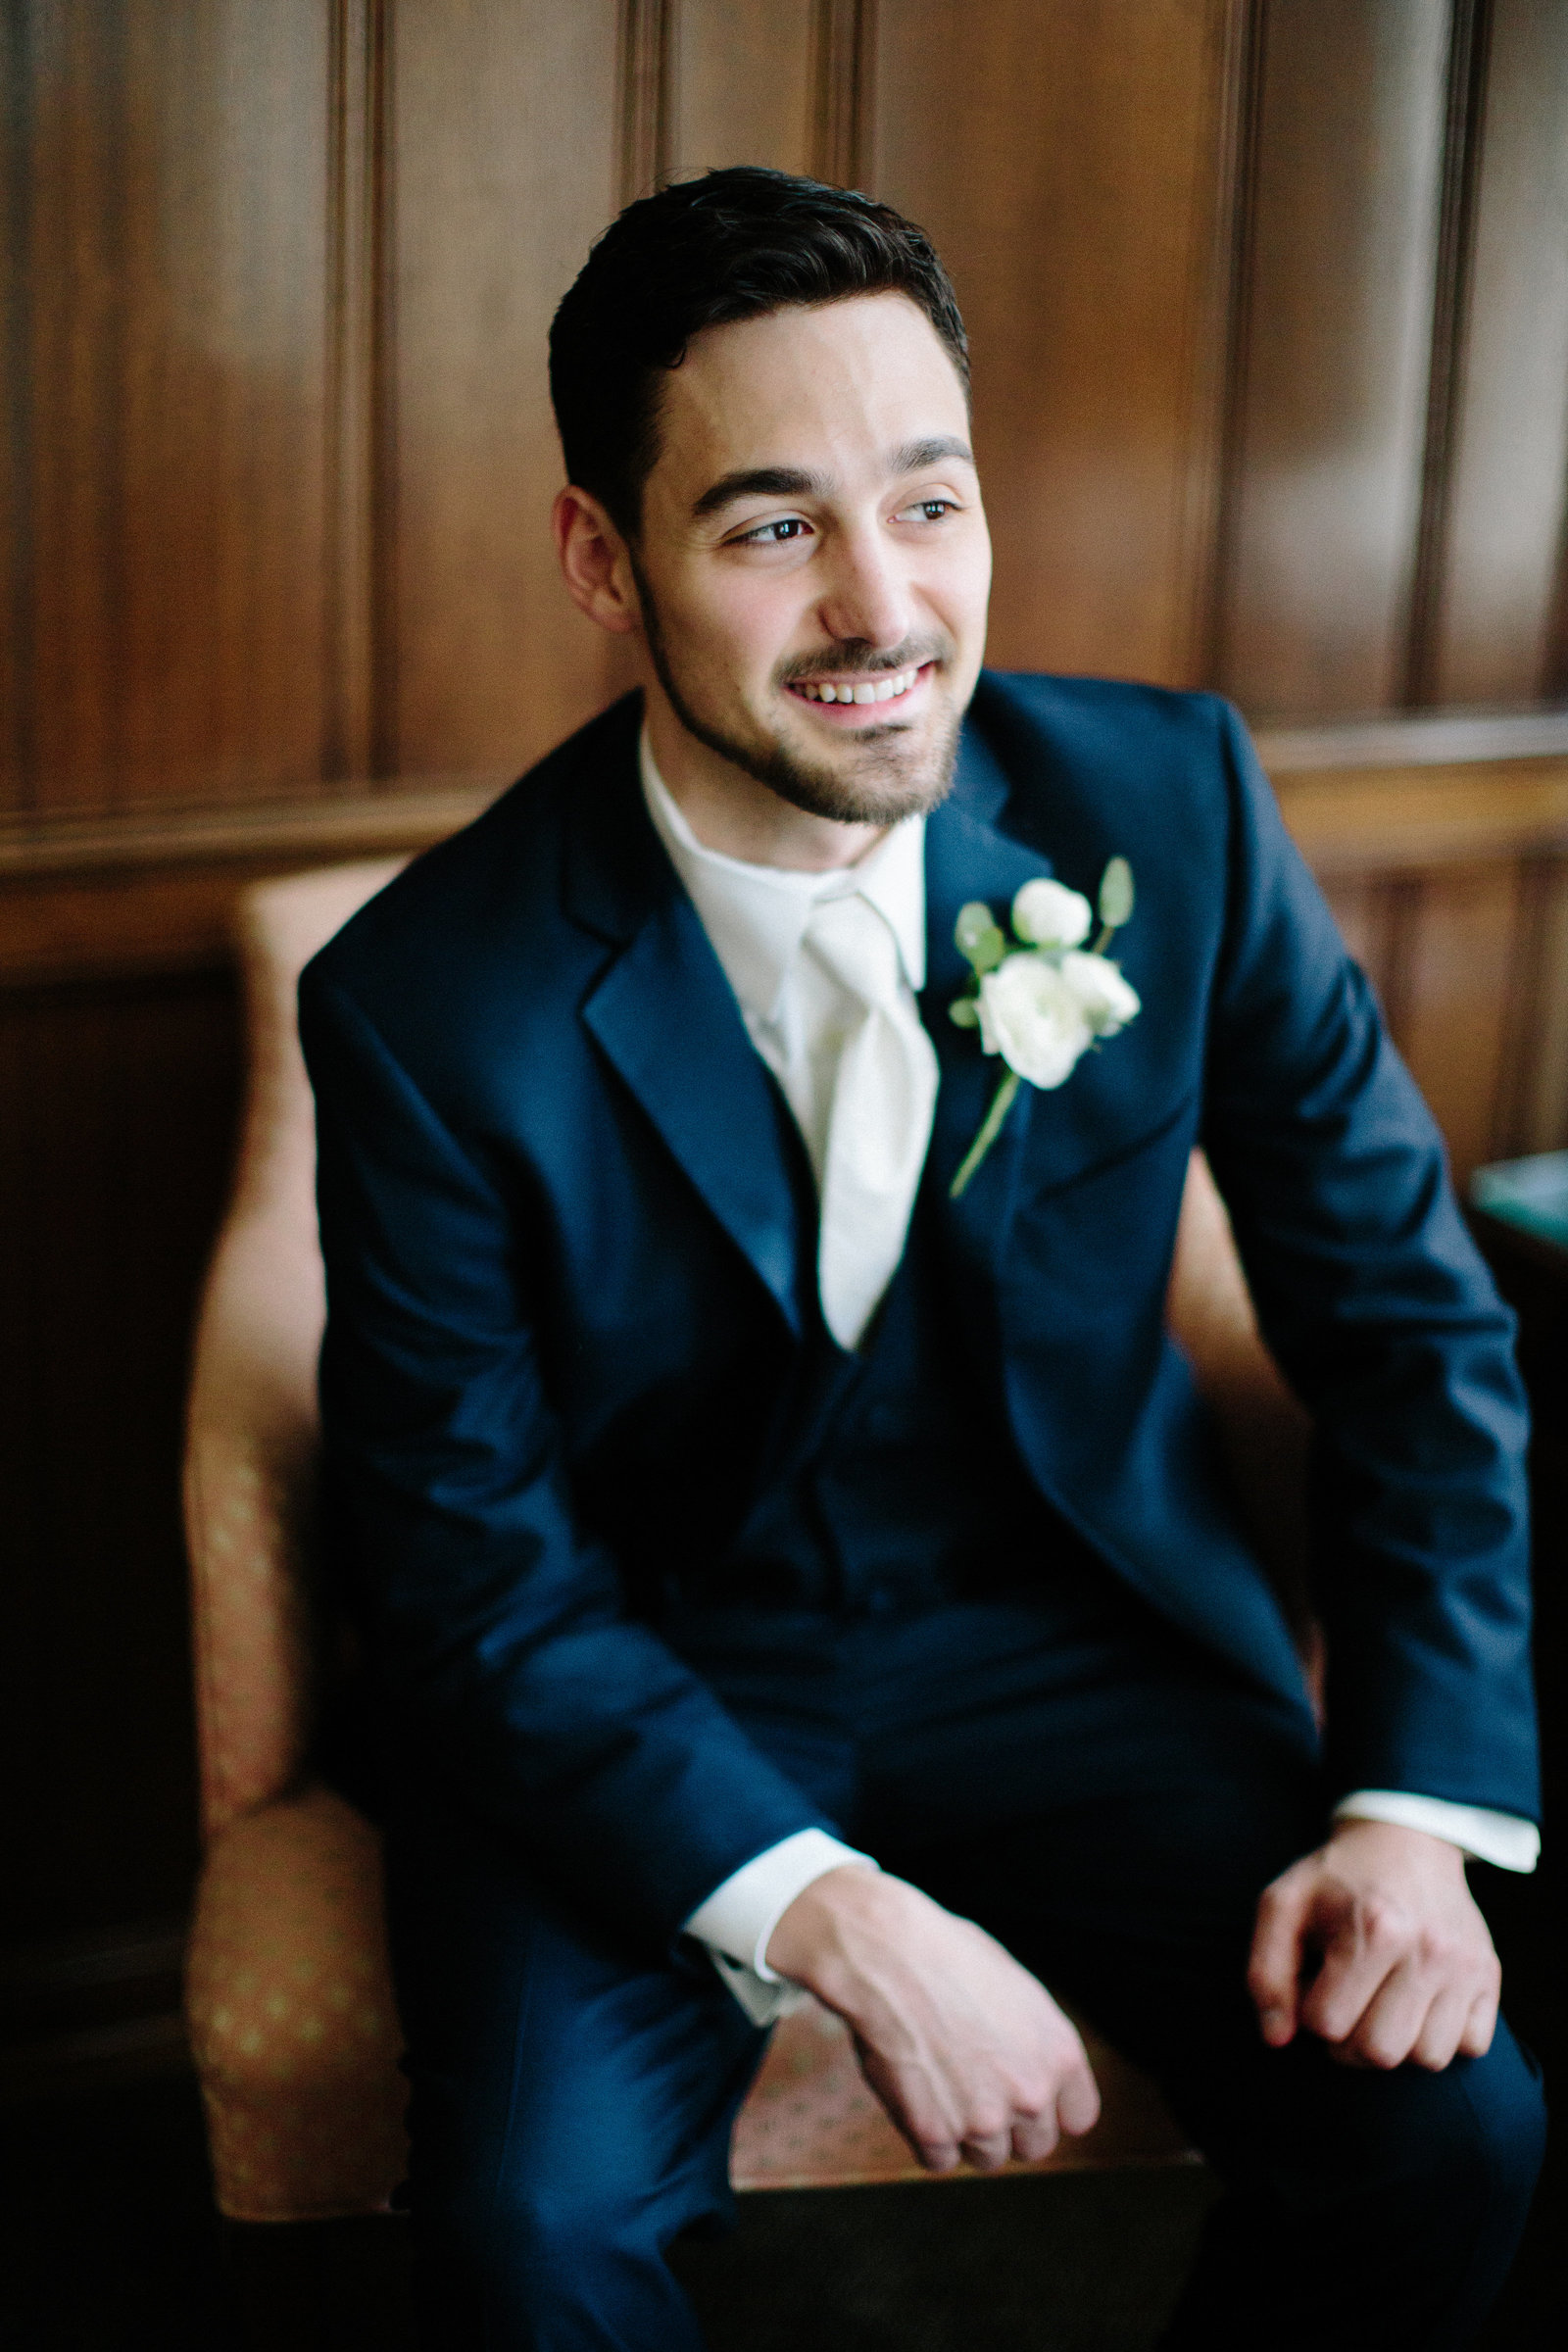 Youngstown Ohio wedding at the Trinity United Methodist Church by Austin and Rachel Photography